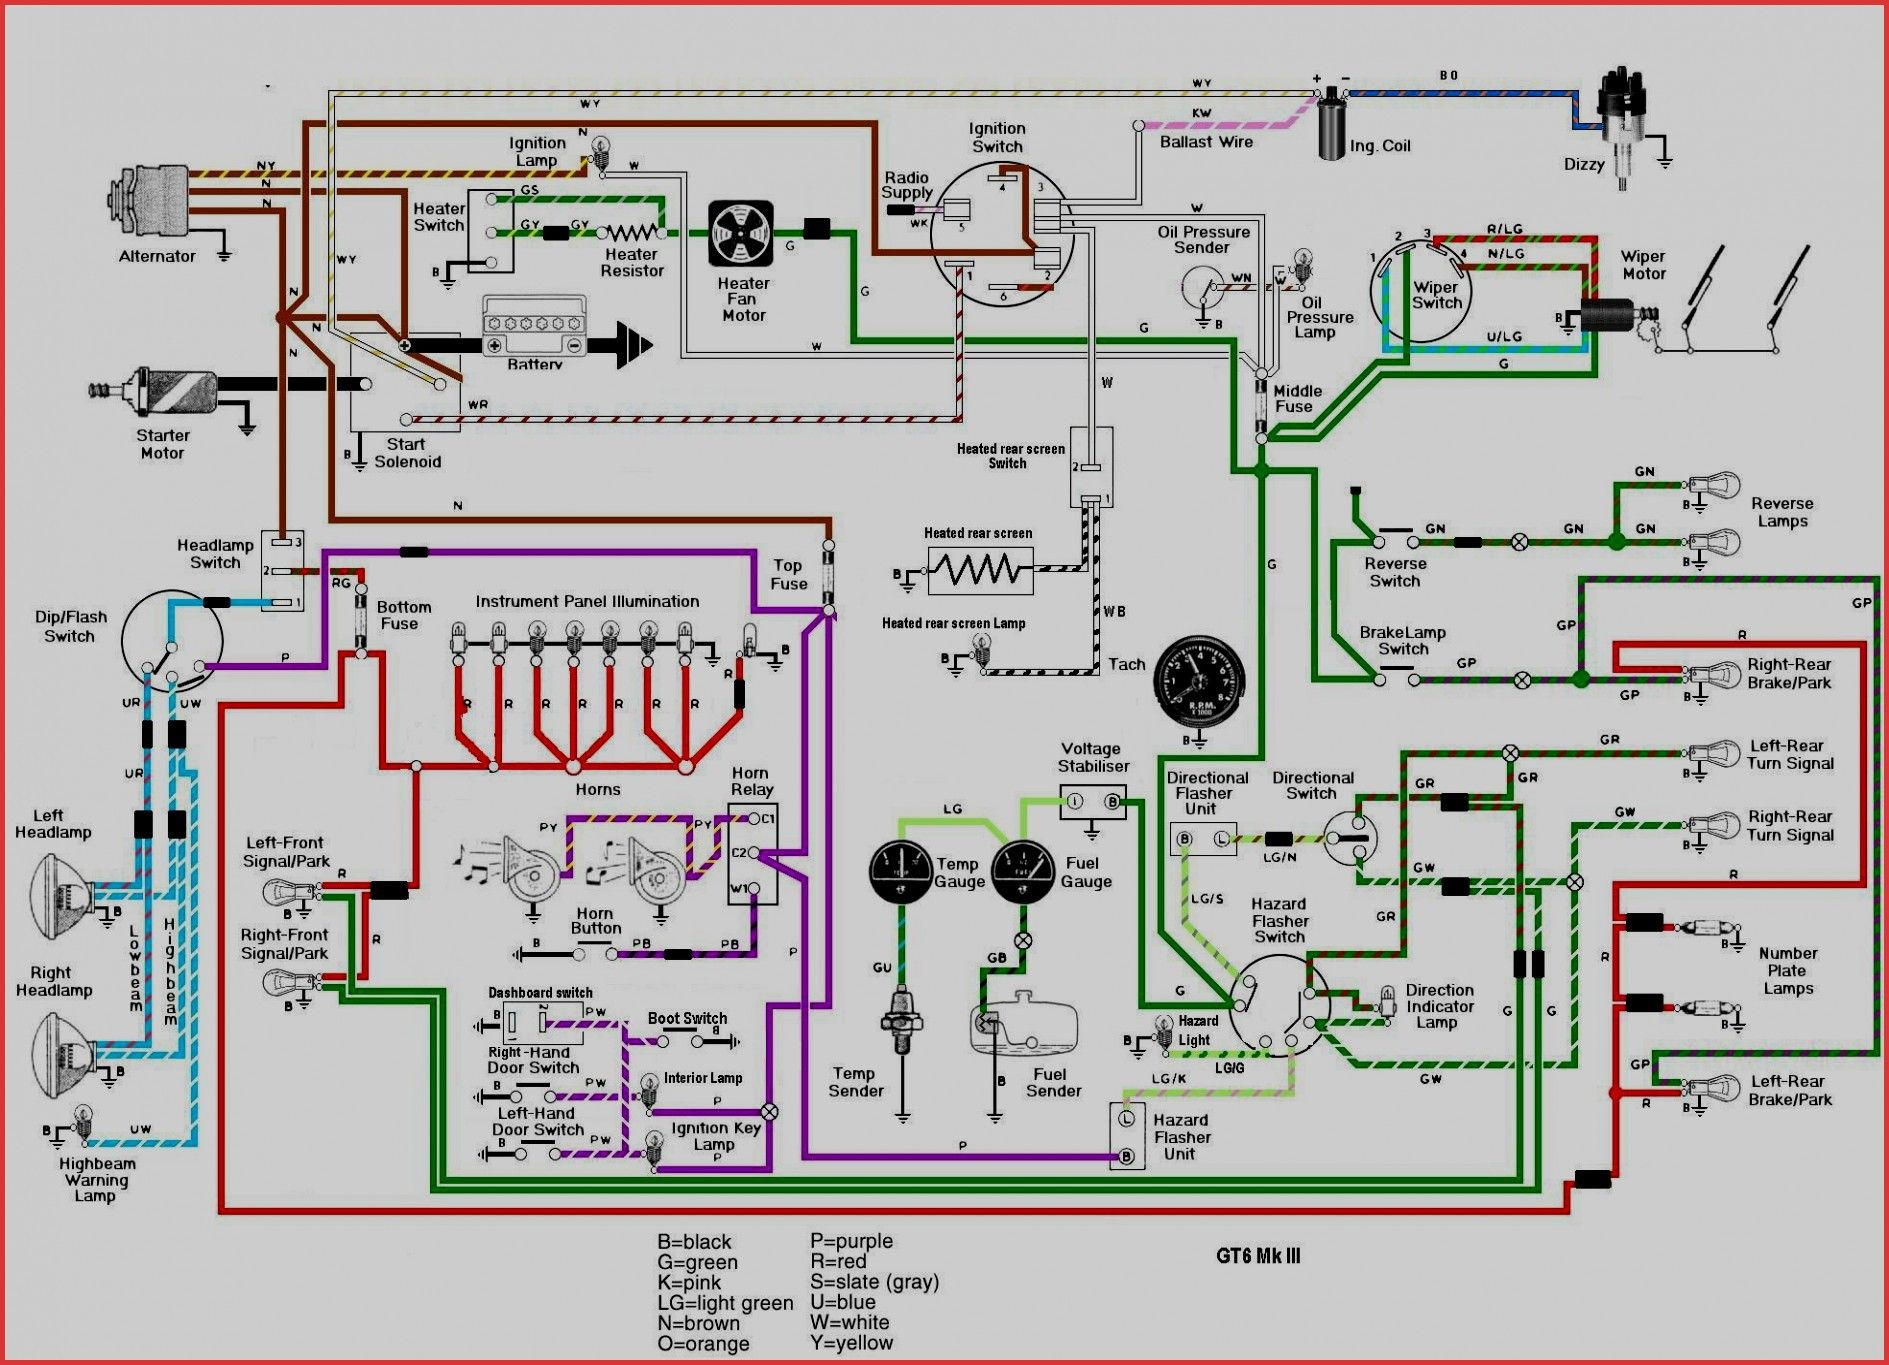 Unique Double Dimmer Switch Wiring Diagram Uk Electrical Circuit Diagram Electrical Diagram Electrical Wiring Diagram